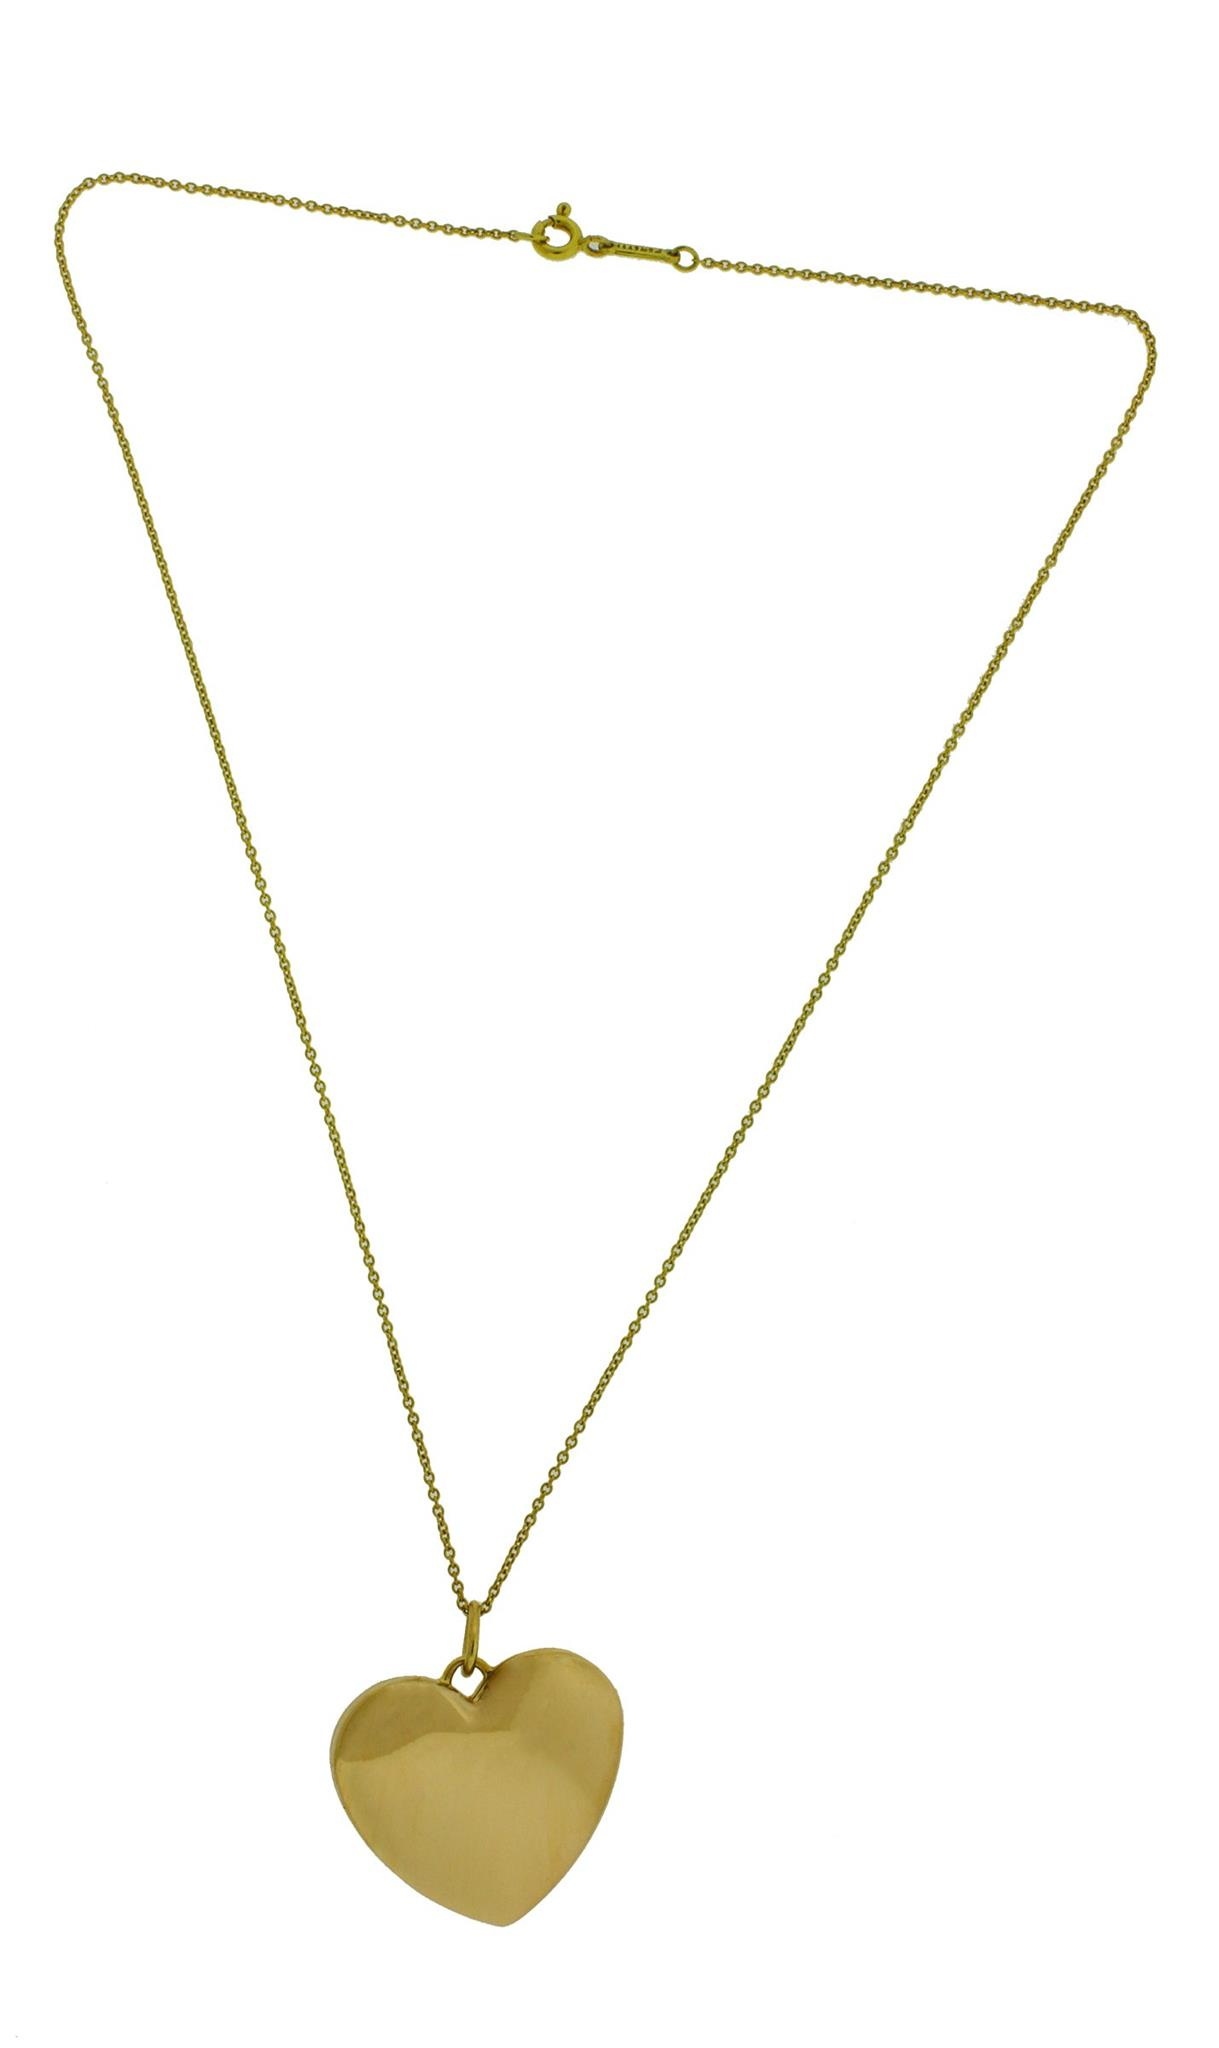 c5d4a49f3 Details about Tiffany & Co heart shape locket necklace in 18k yellow gold